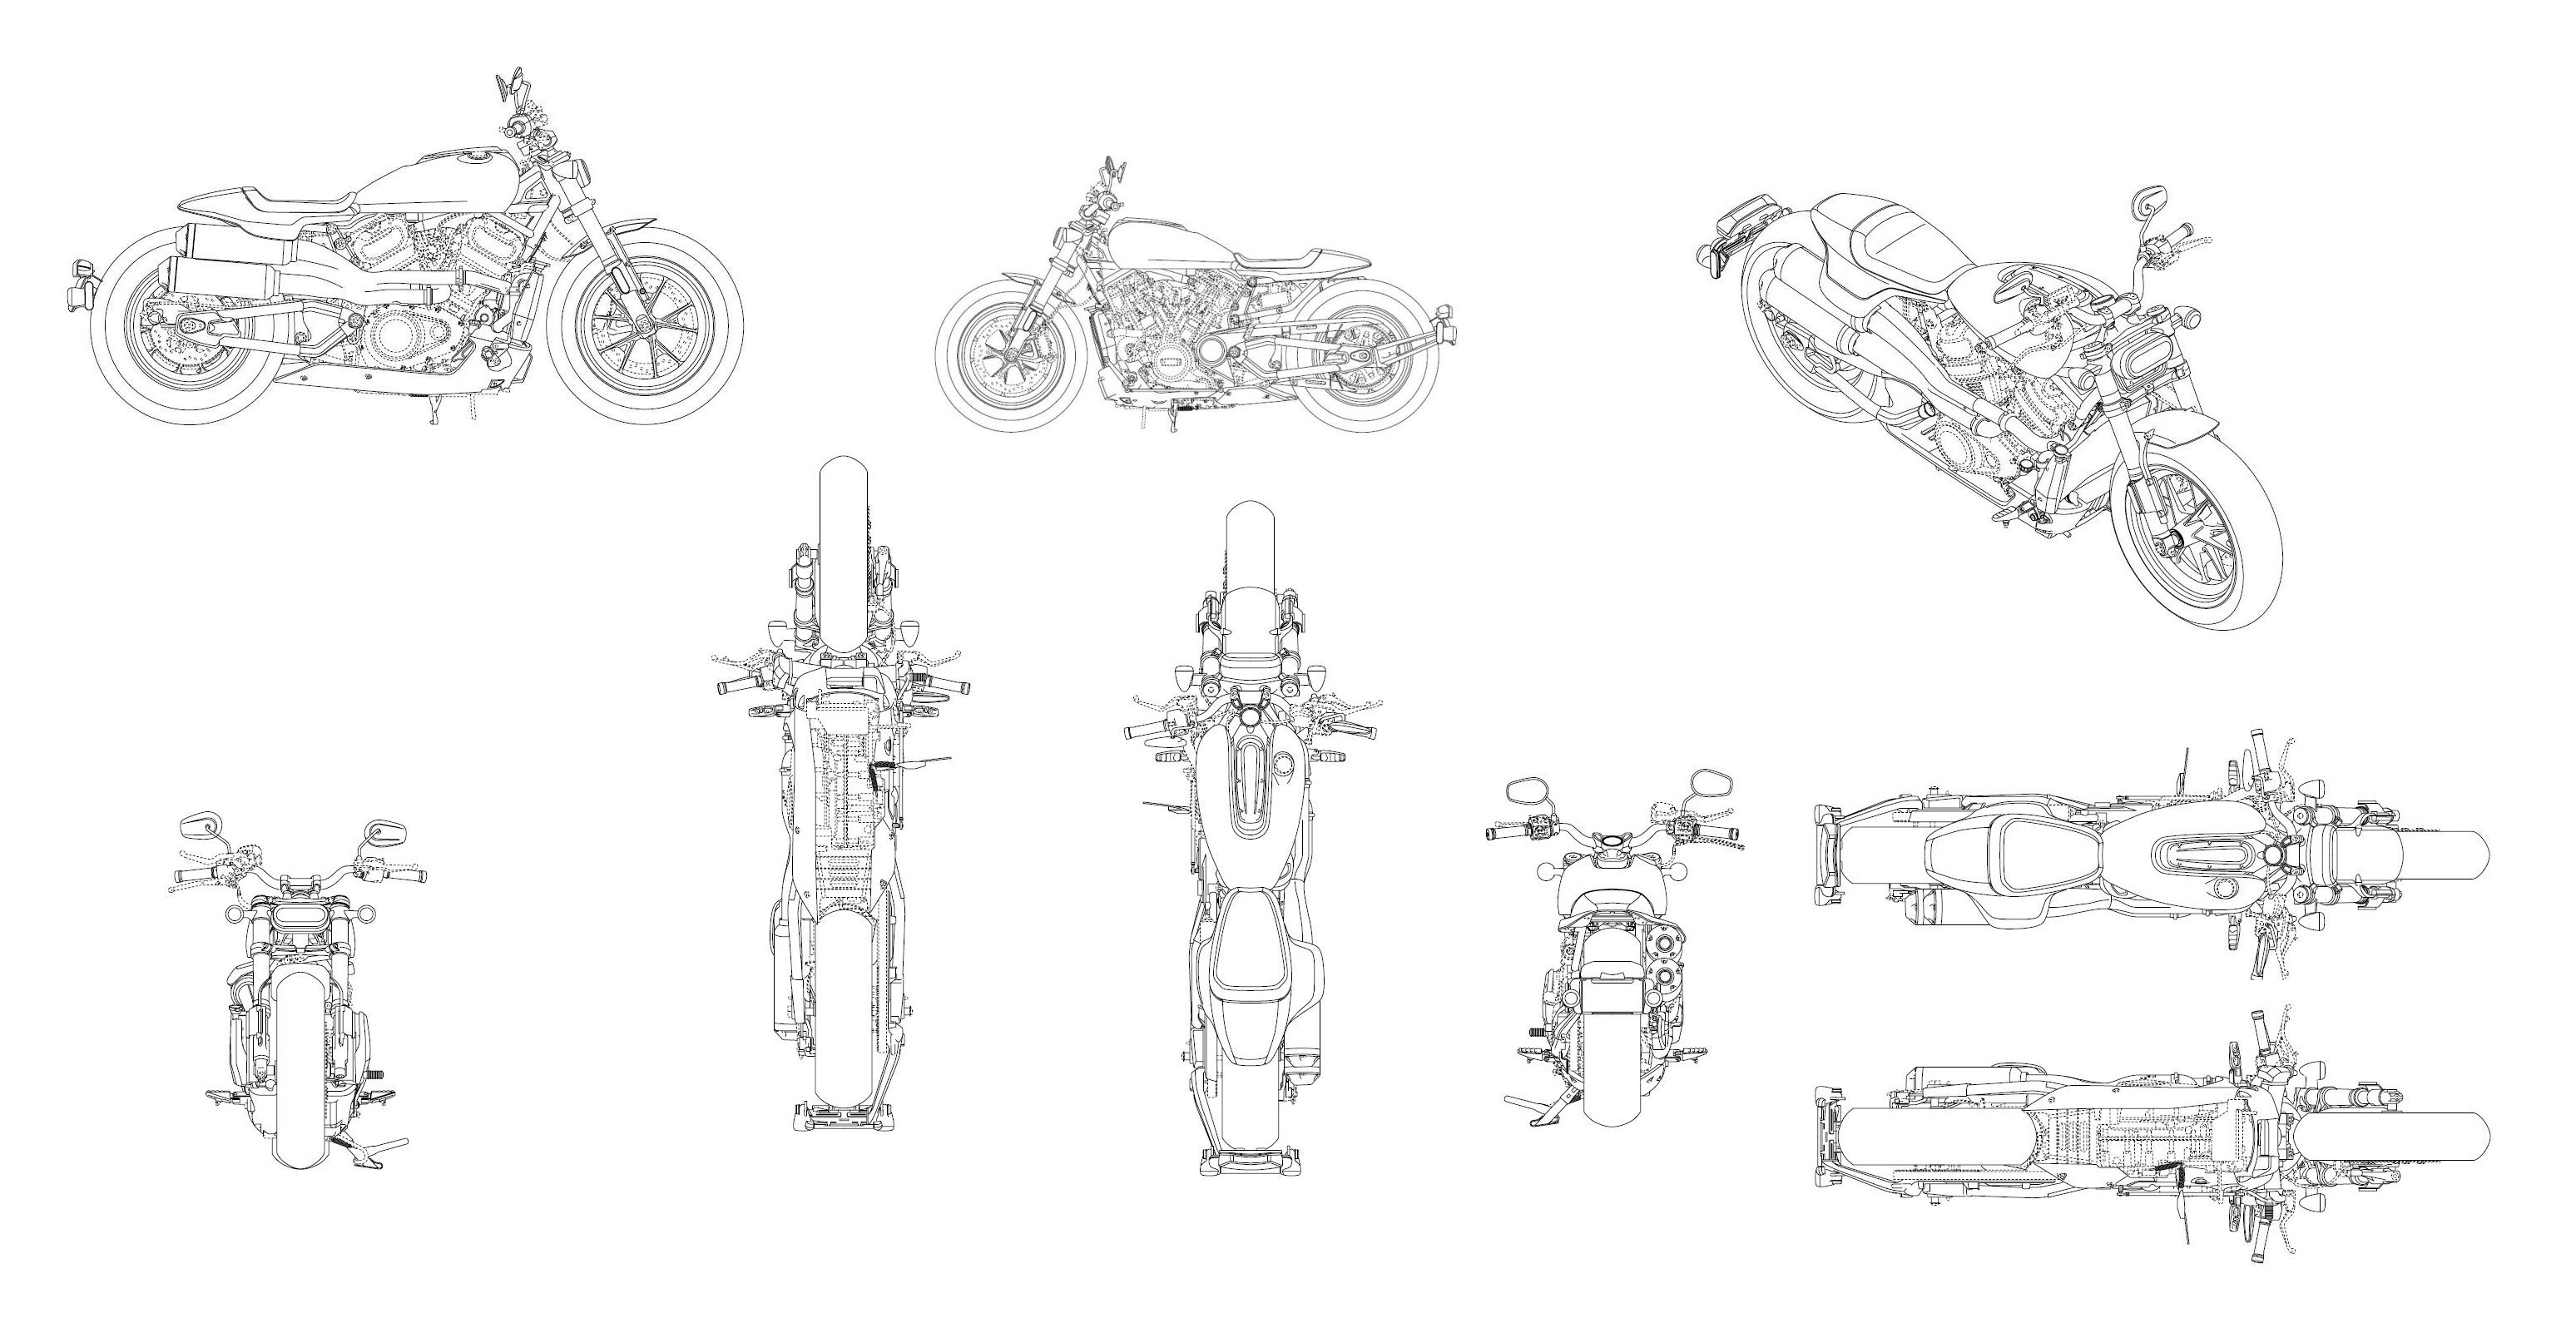 Here's another look at Harley-Davidson's Pan America